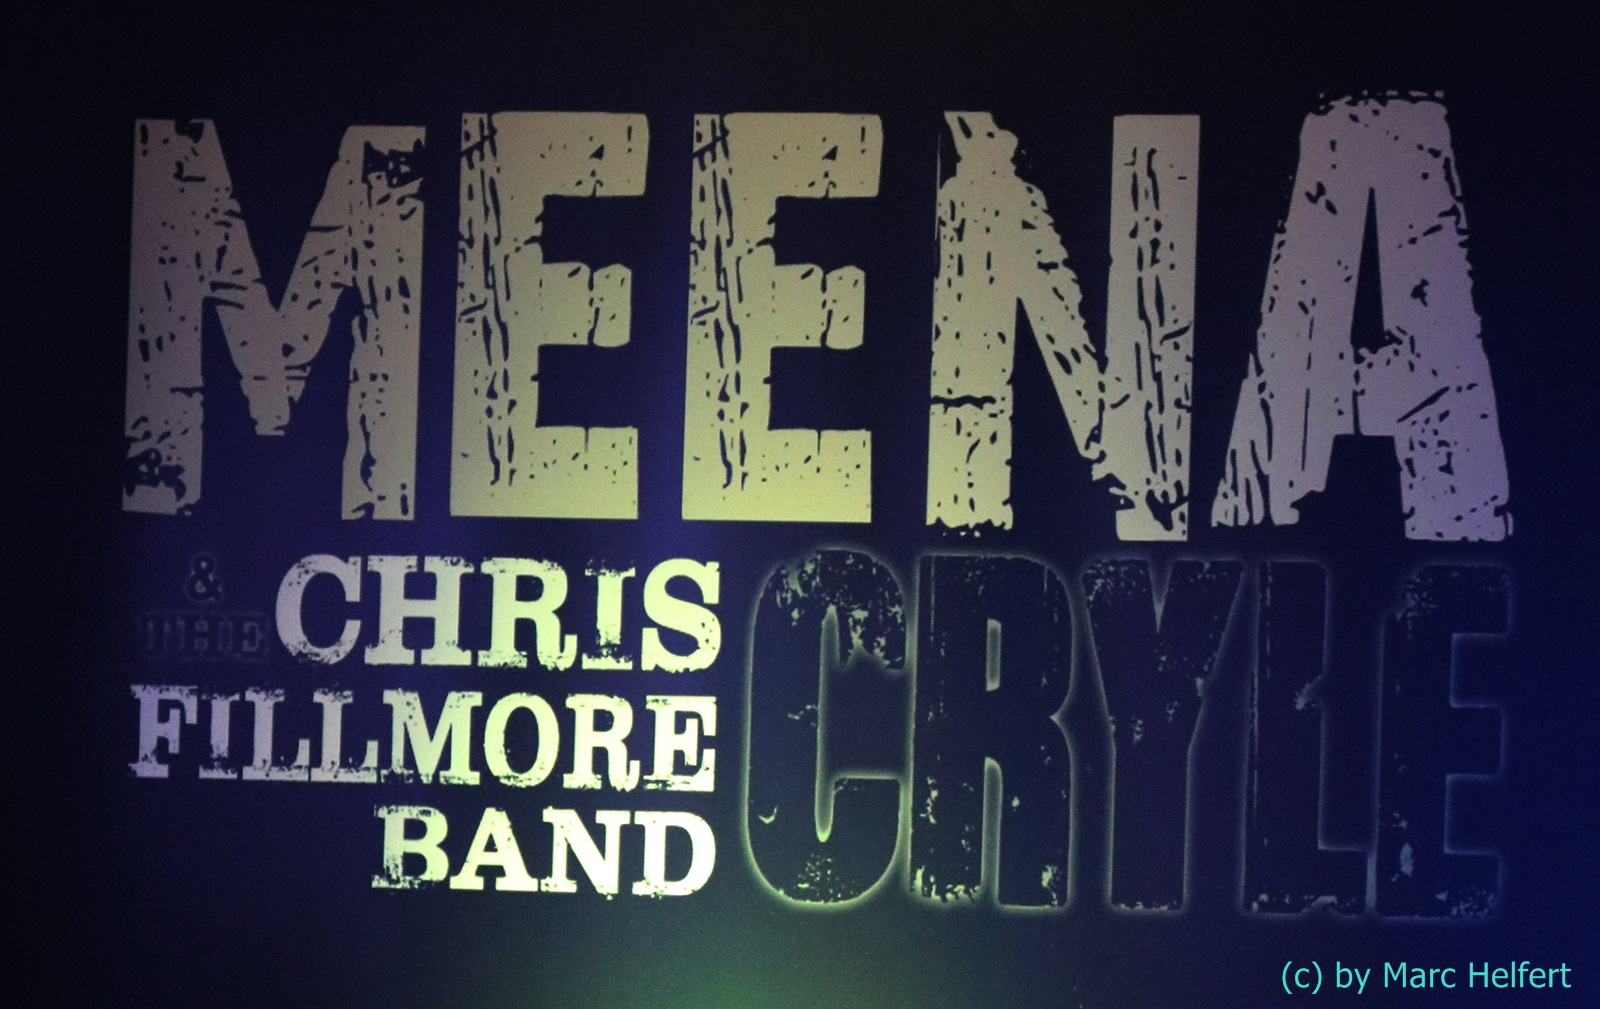 Meena Cryle and Chris Filmore Band